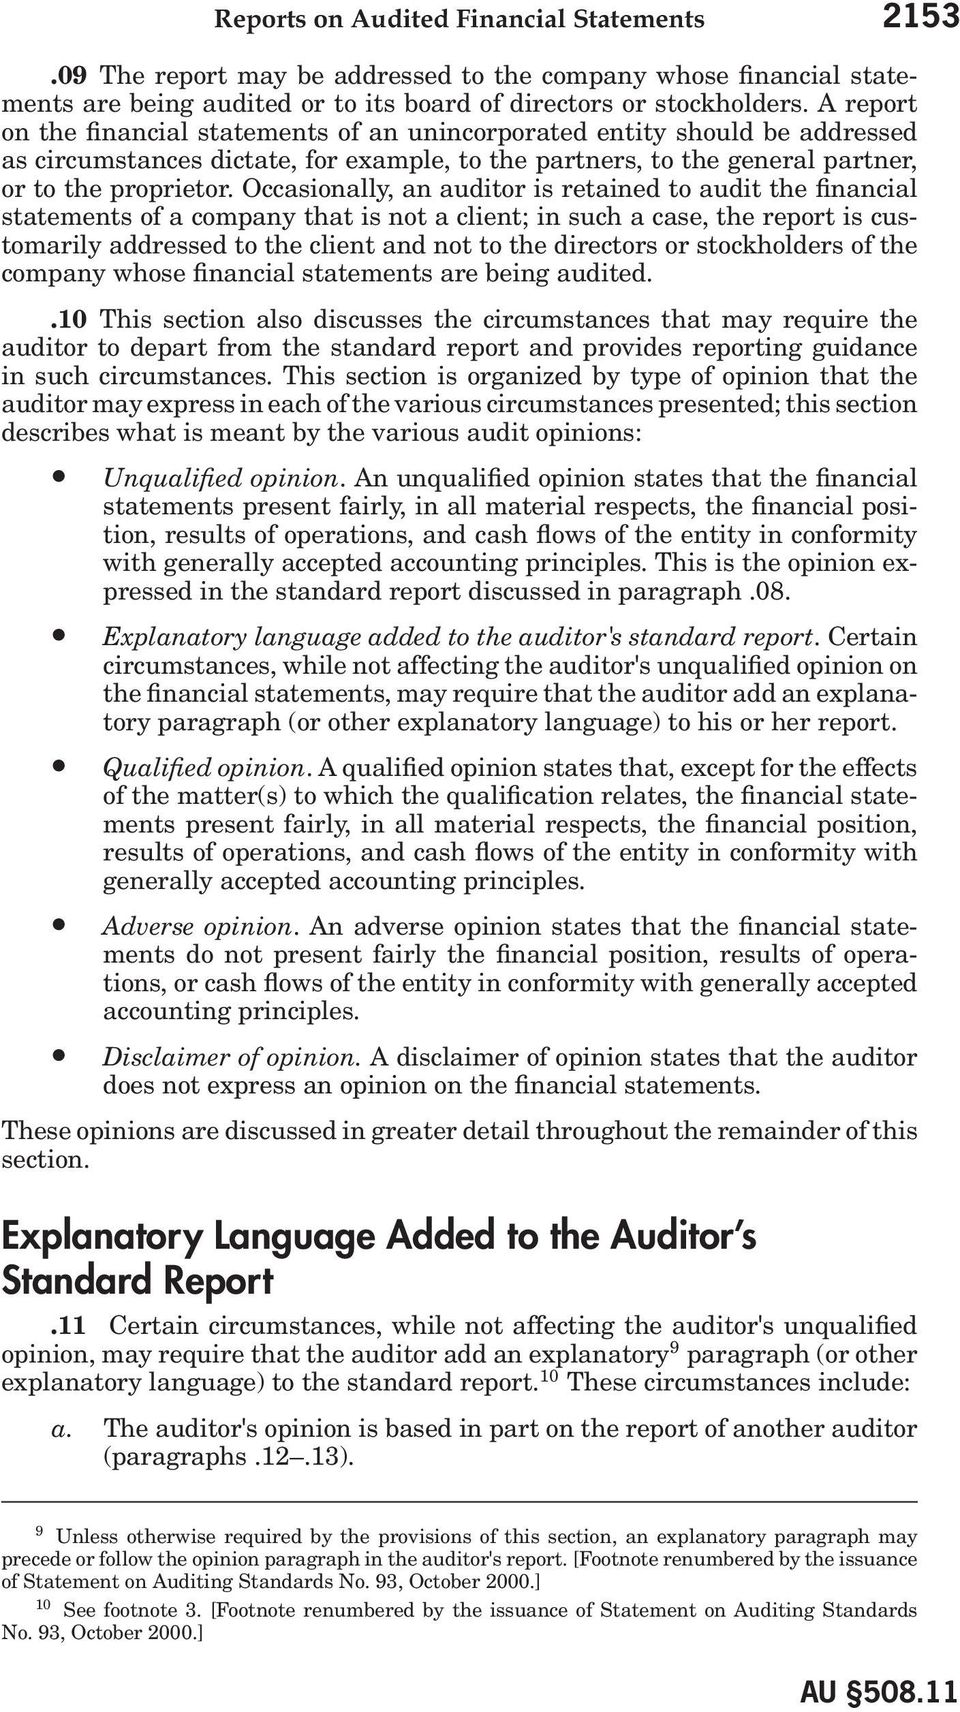 Occasionally, an auditor is retained to audit the financial statements of a company that is not a client; in such a case, the report is customarily addressed to the client and not to the directors or